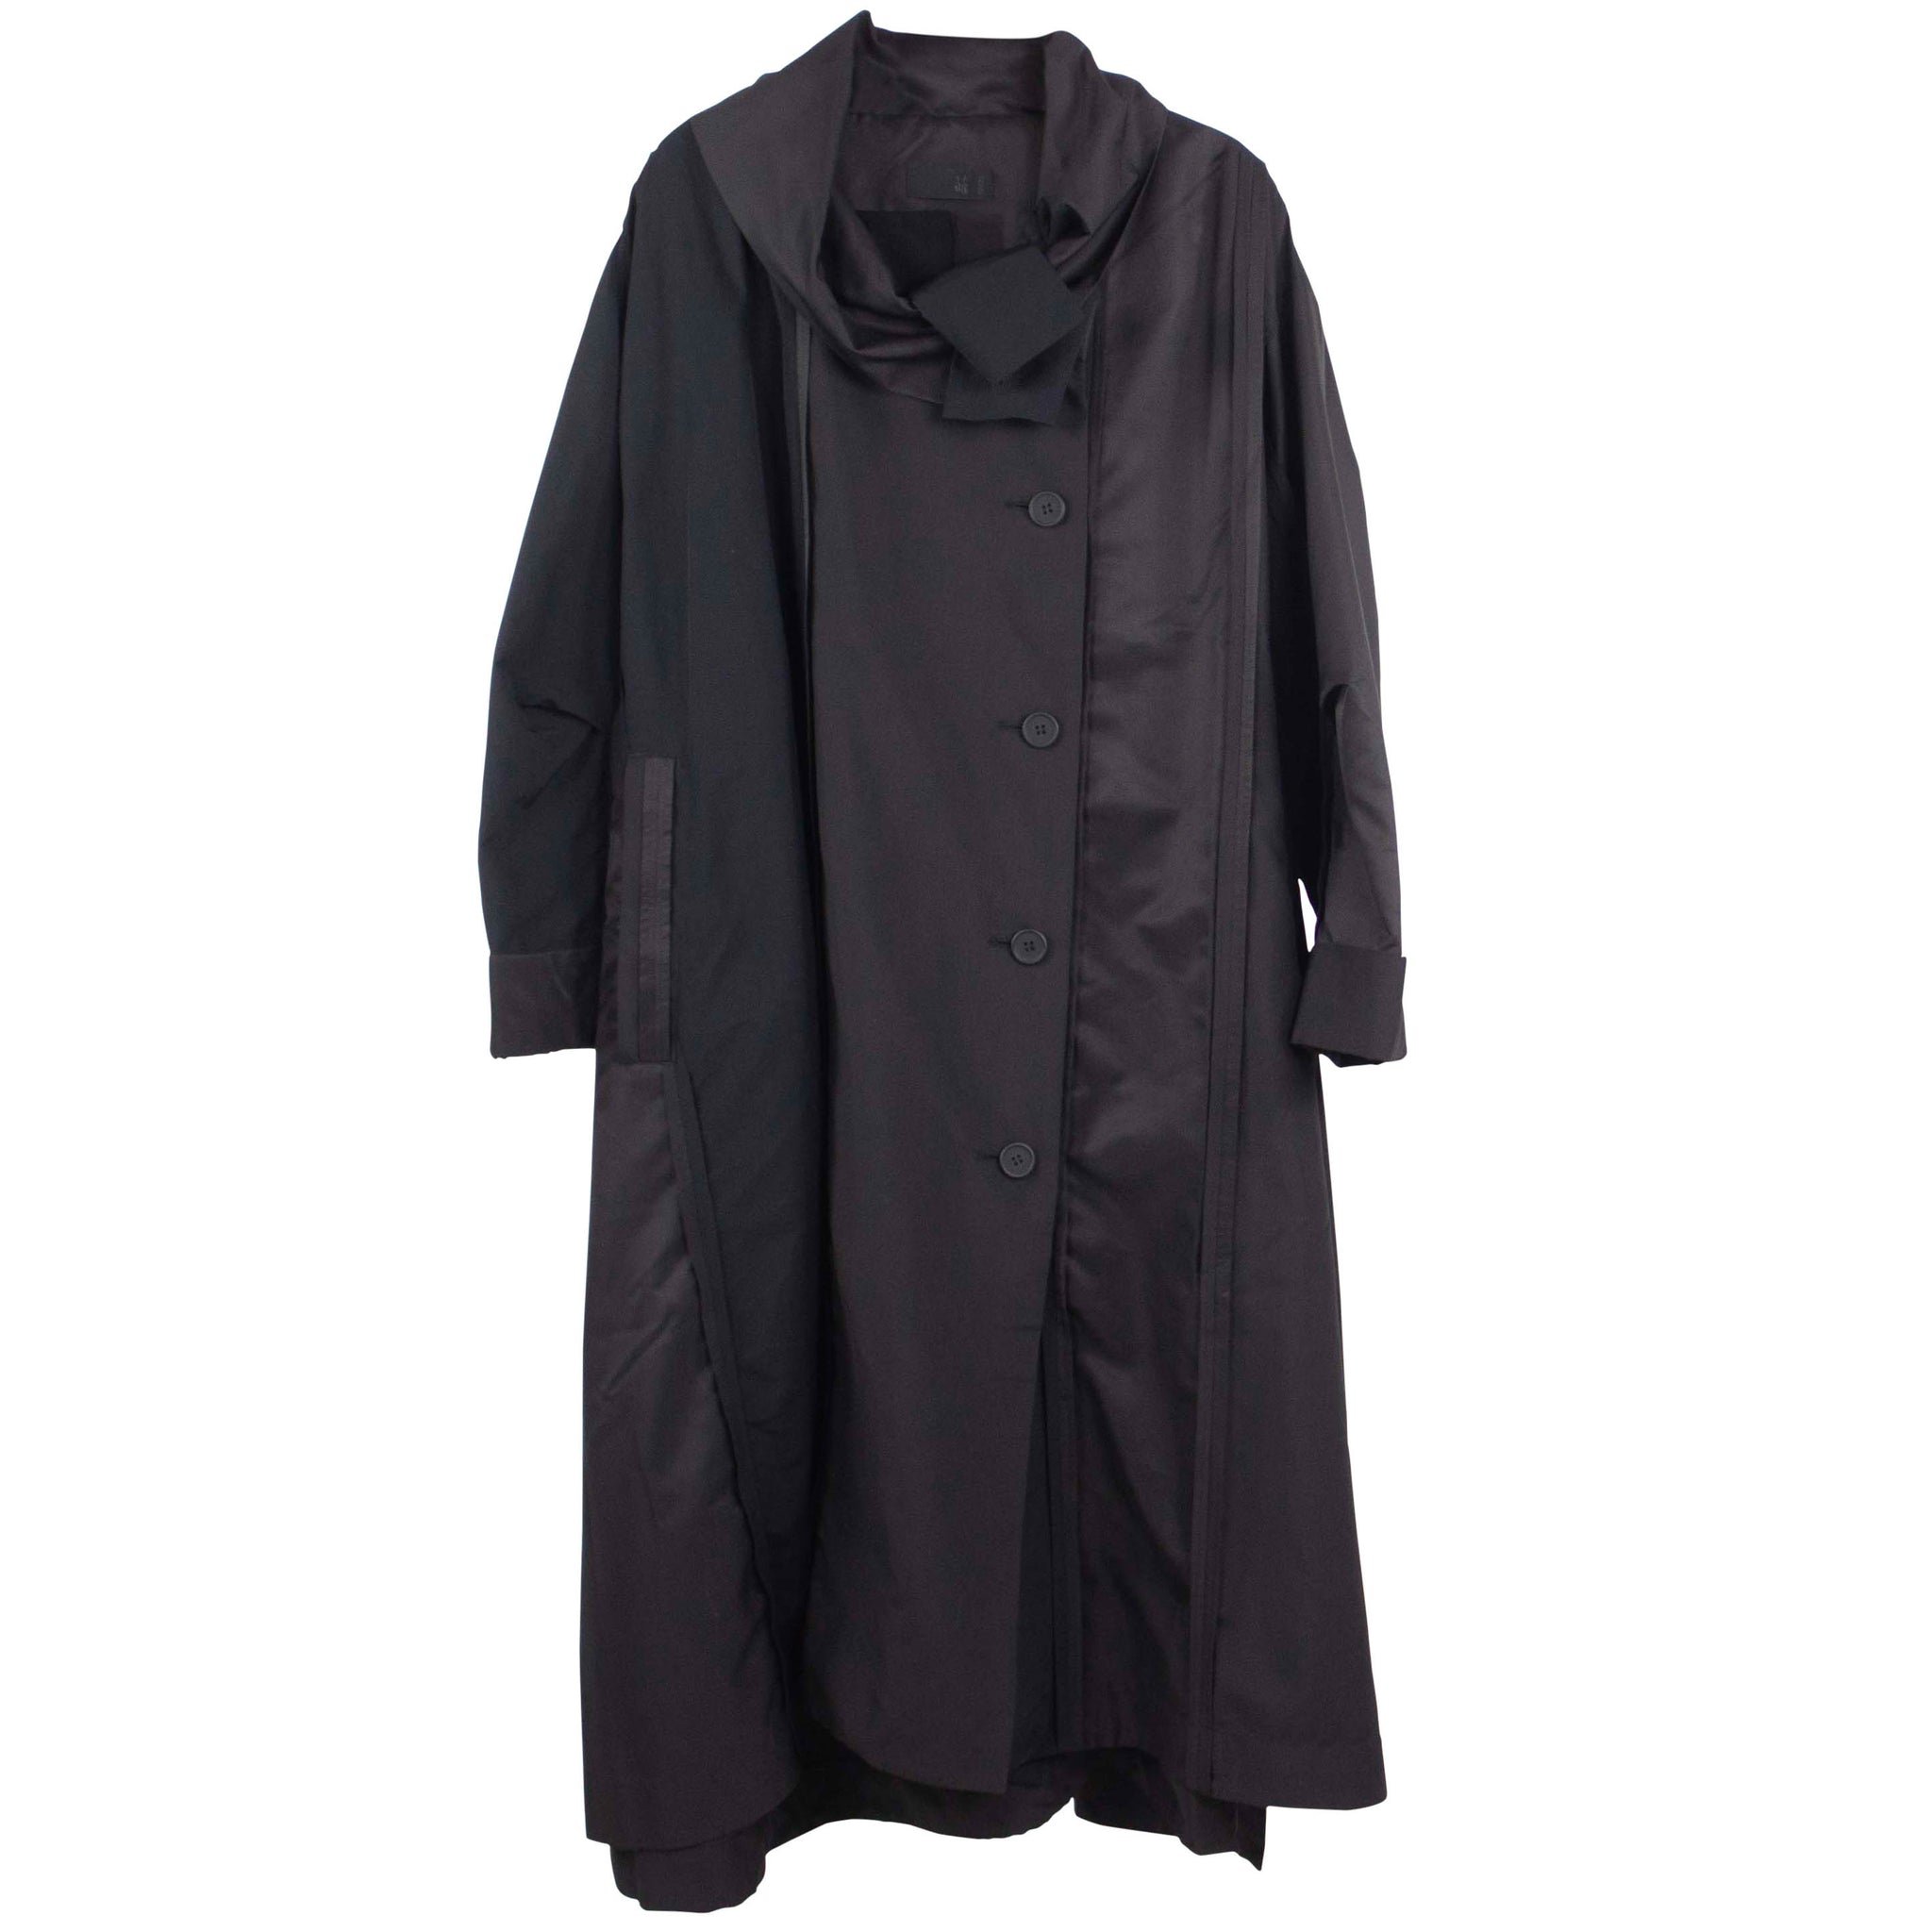 Moyuru Black Button Down Raincoat